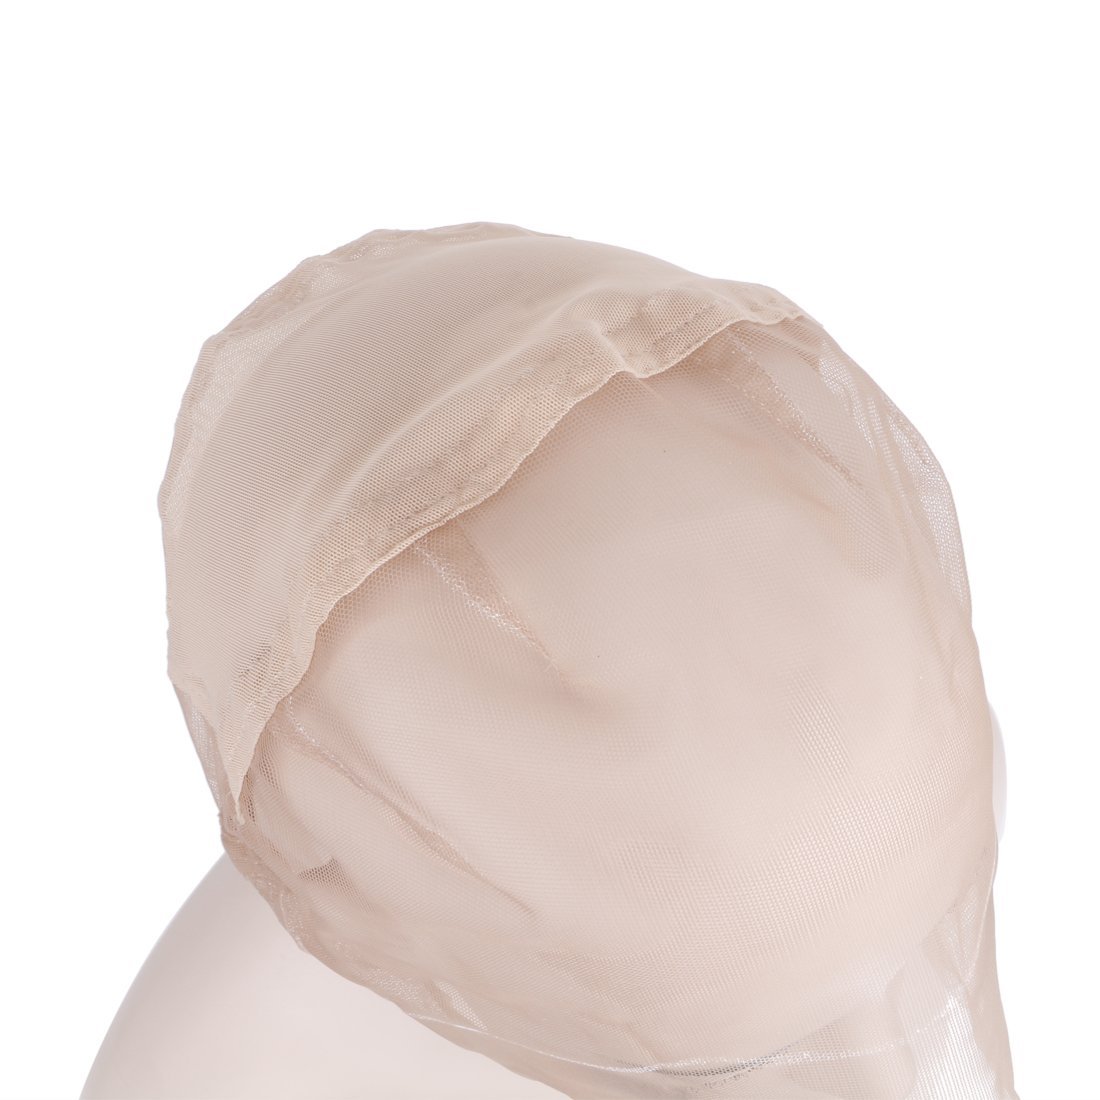 Creamily Professional Swiss Lace Wig Caps for Making Wig with Adjustable Straps Medium Size 22.5inch (Full Lace Cap, Light Brown Color) by Creamily (Image #4)